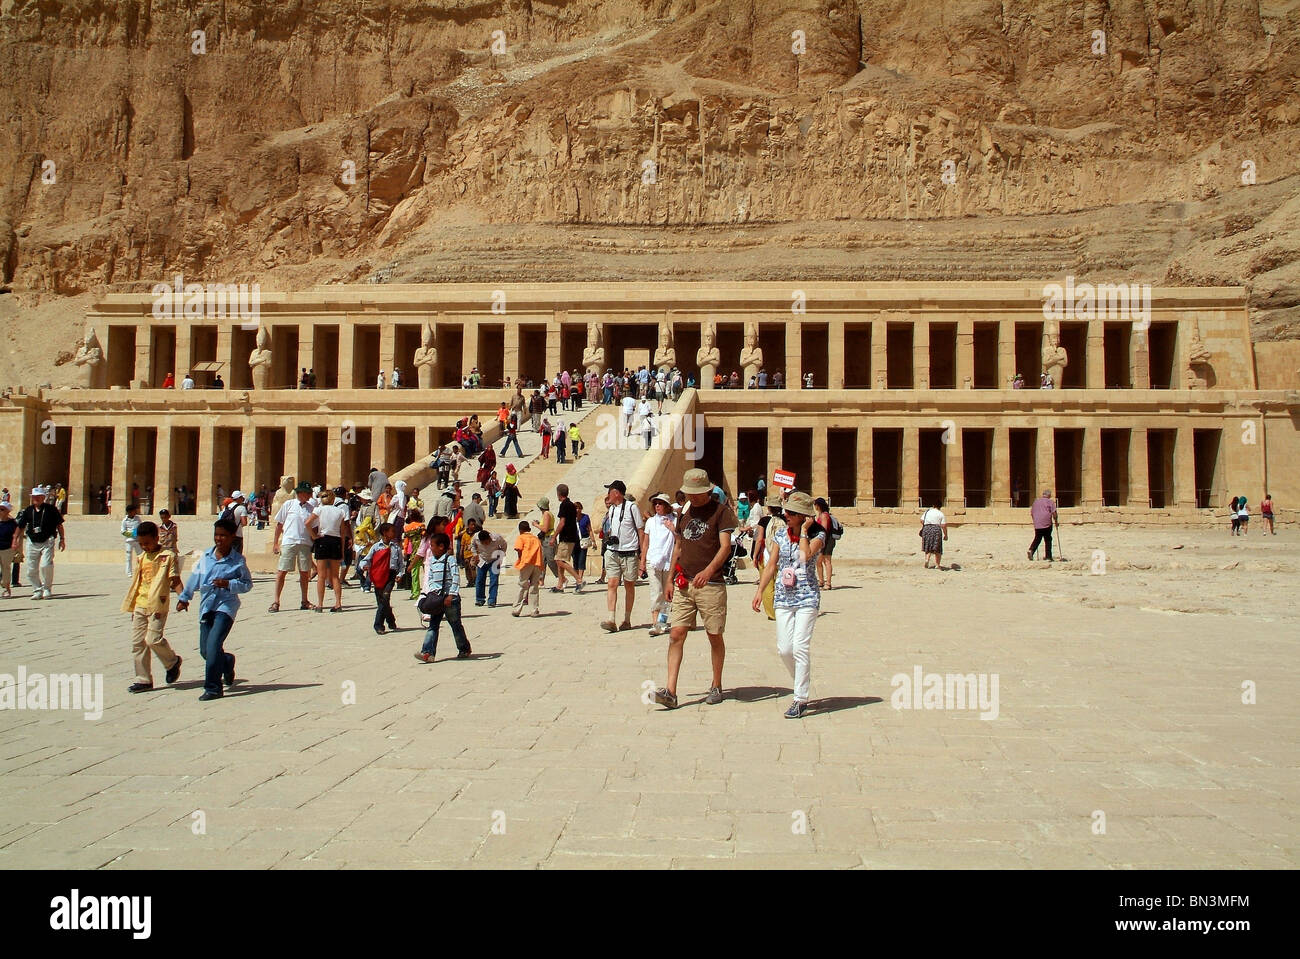 Tourists at the Hatschepsut Temple, Luxor, Egypt Stock Photo